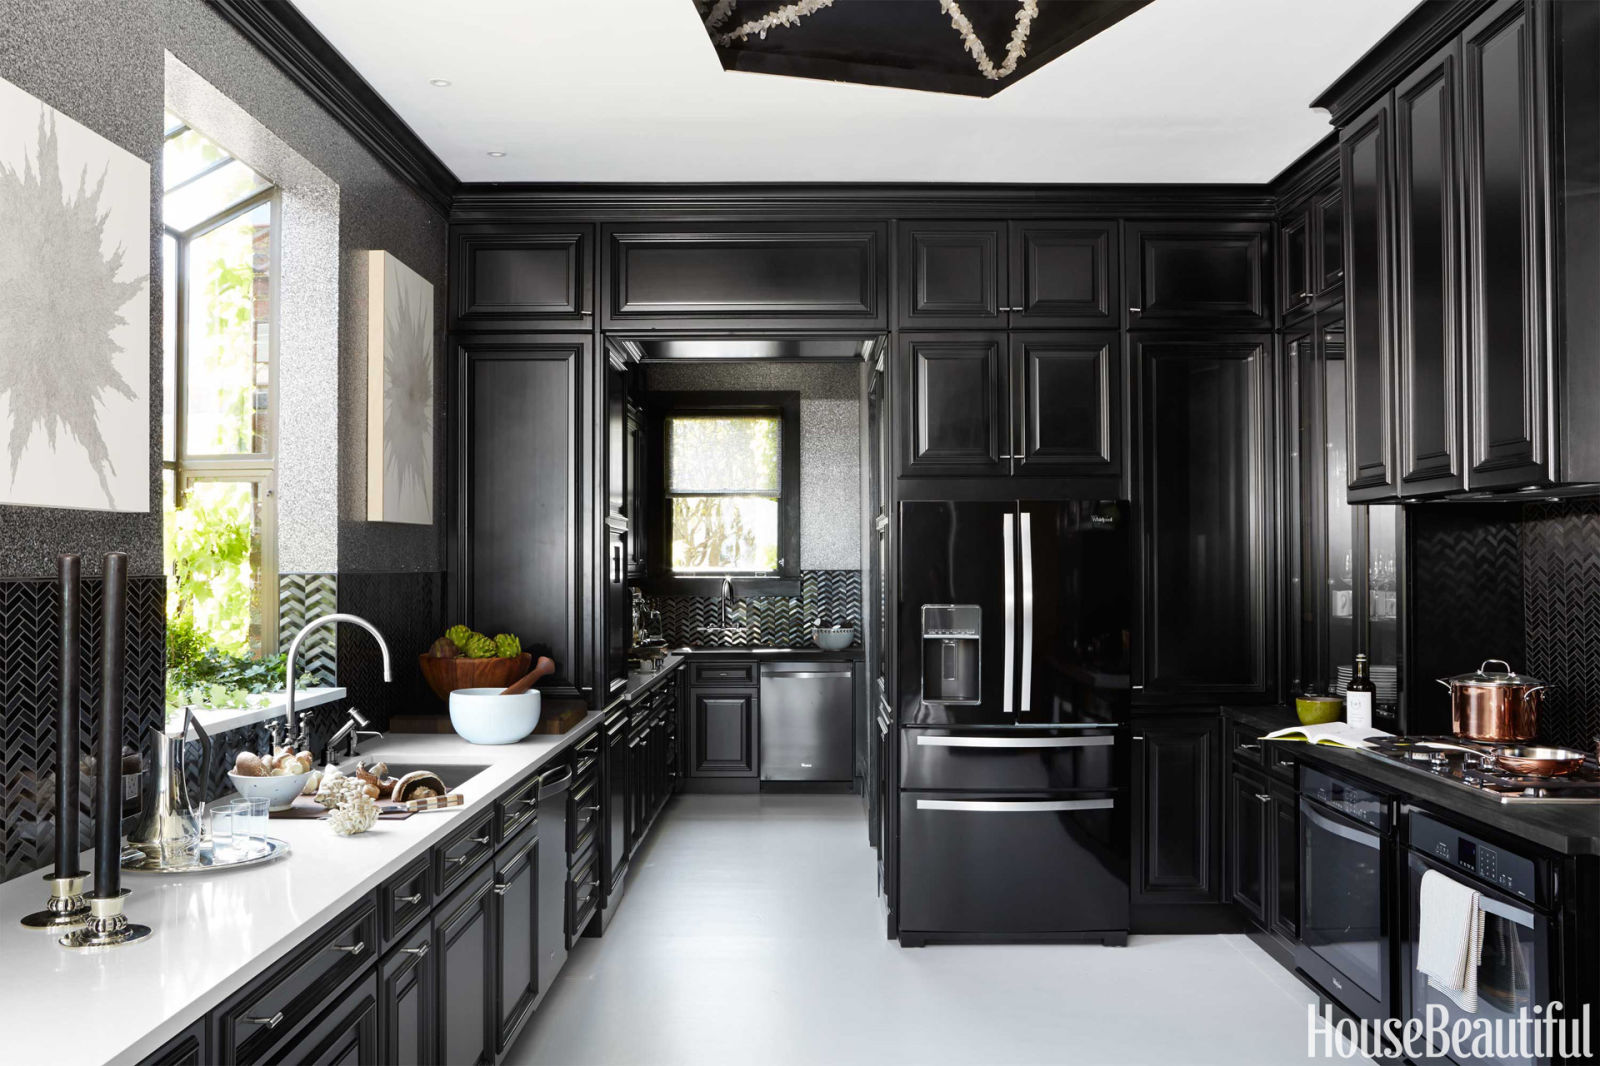 kitchens of the year designer tips from house beautifuls kitchen of the year. Interior Design Ideas. Home Design Ideas